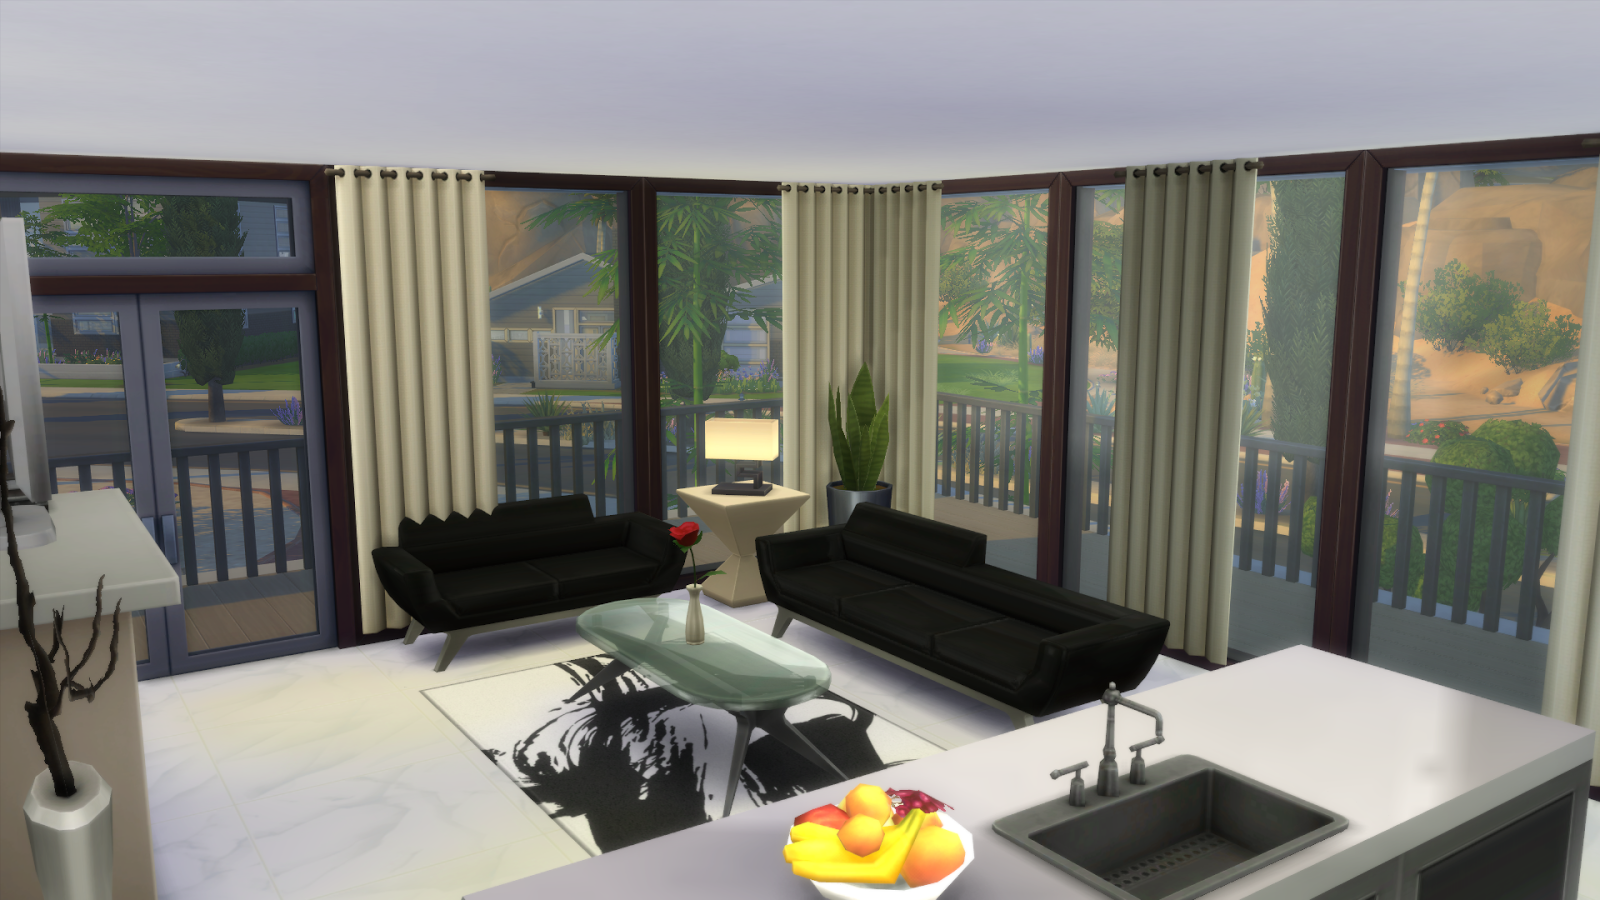 Lacey loves sims tropical getaway for Tropical getaways in december